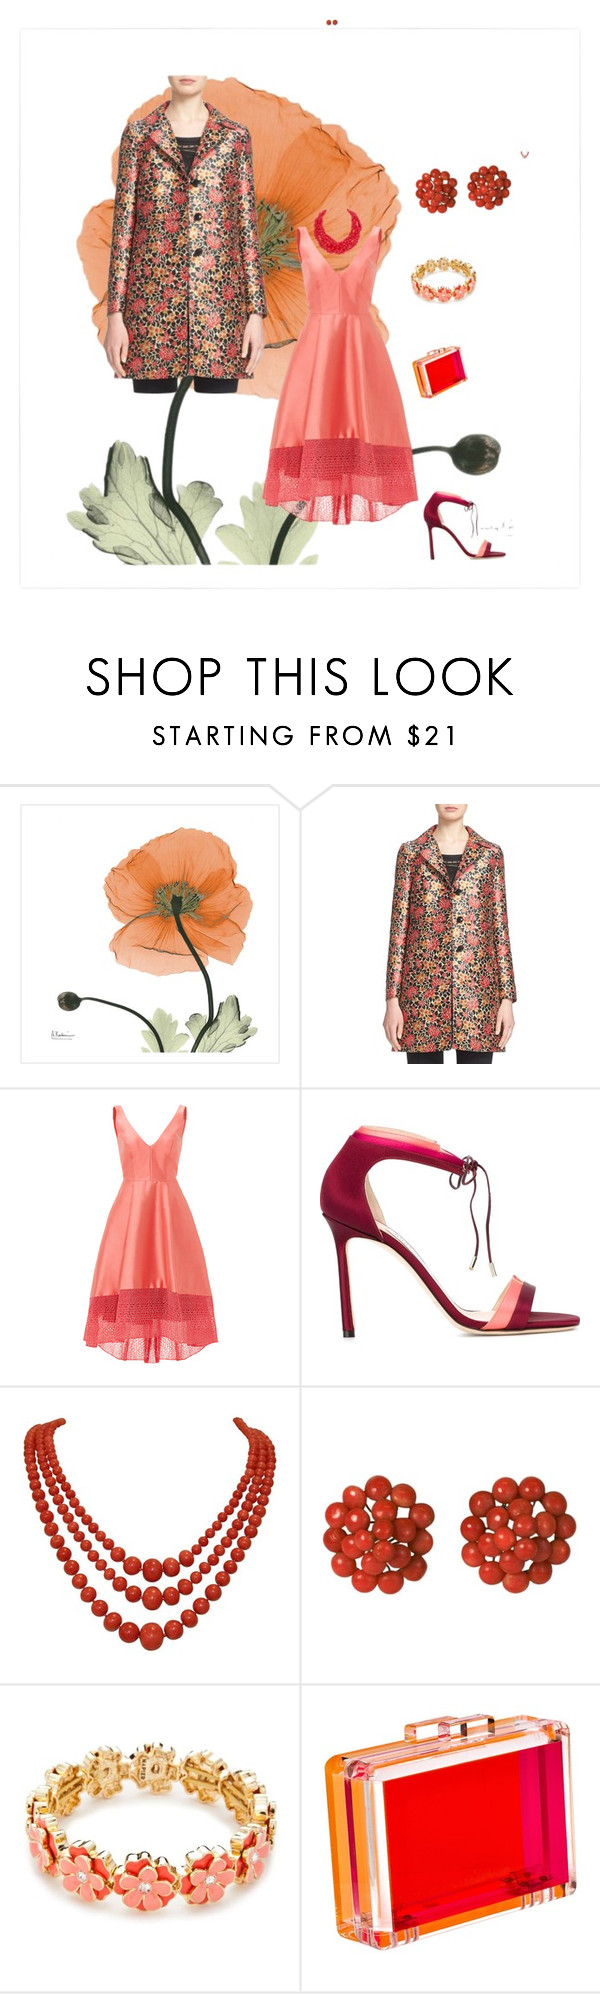 """""""Coral and Red"""" by kitty-hiruma on Polyvore featuring Etro, ML Monique Lhuillier, Jimmy Choo, Napier, CC SKYE and Humble Chic"""